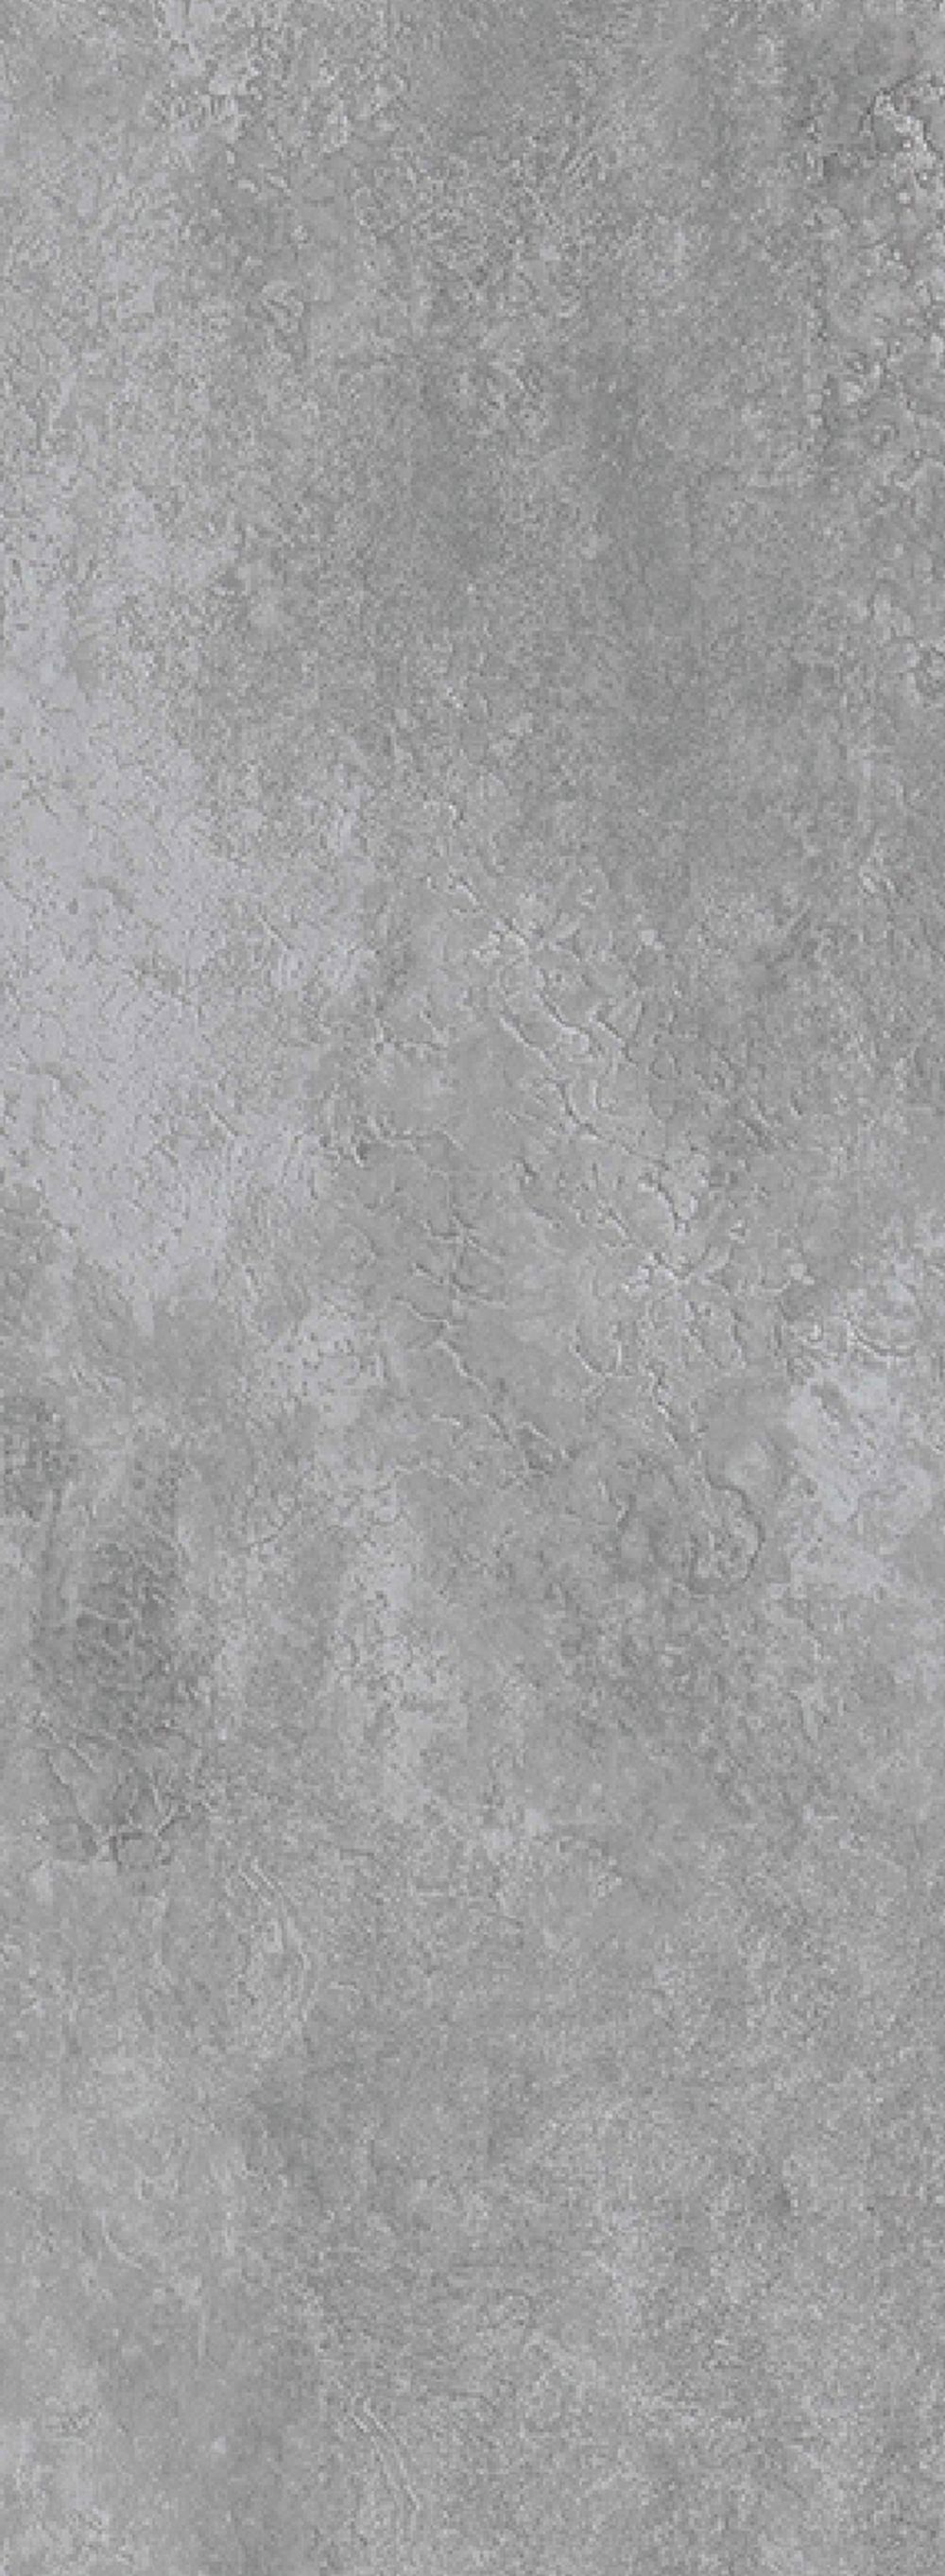 KWG Vinylboden - Antigua Stone Cement grey - Kl...